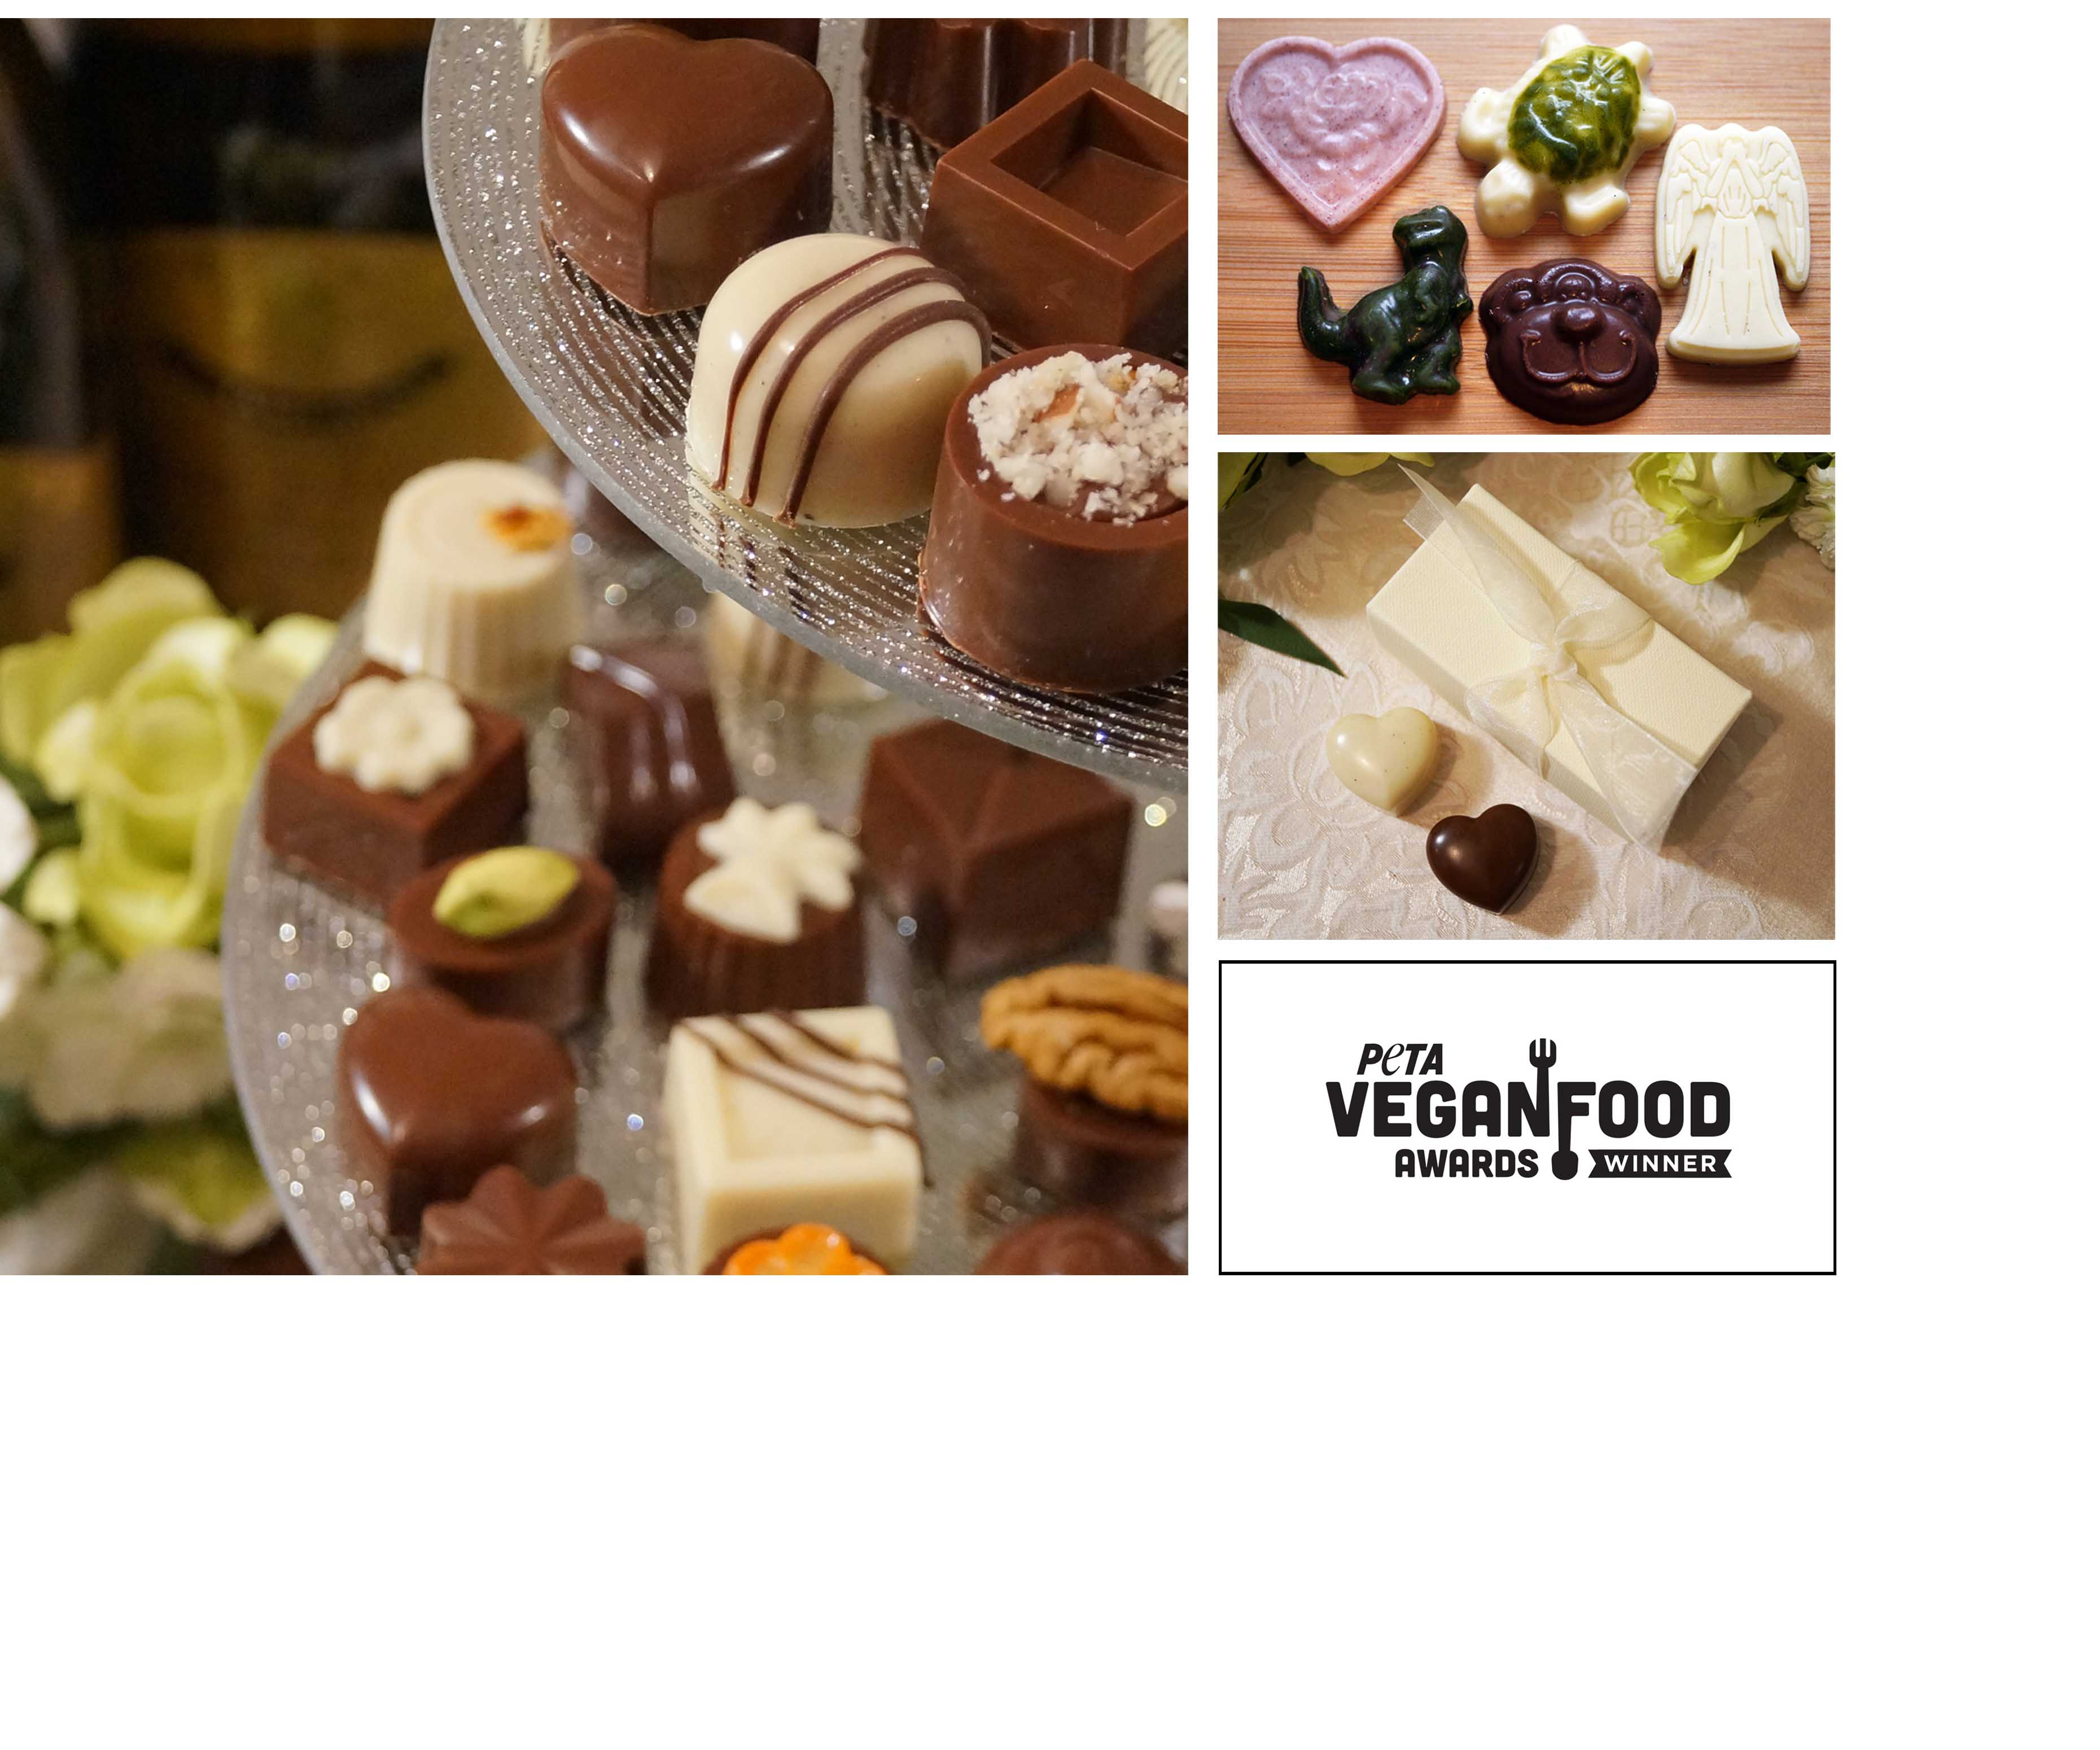 Cocoafeliz organic vegan handmade luxury chocolates